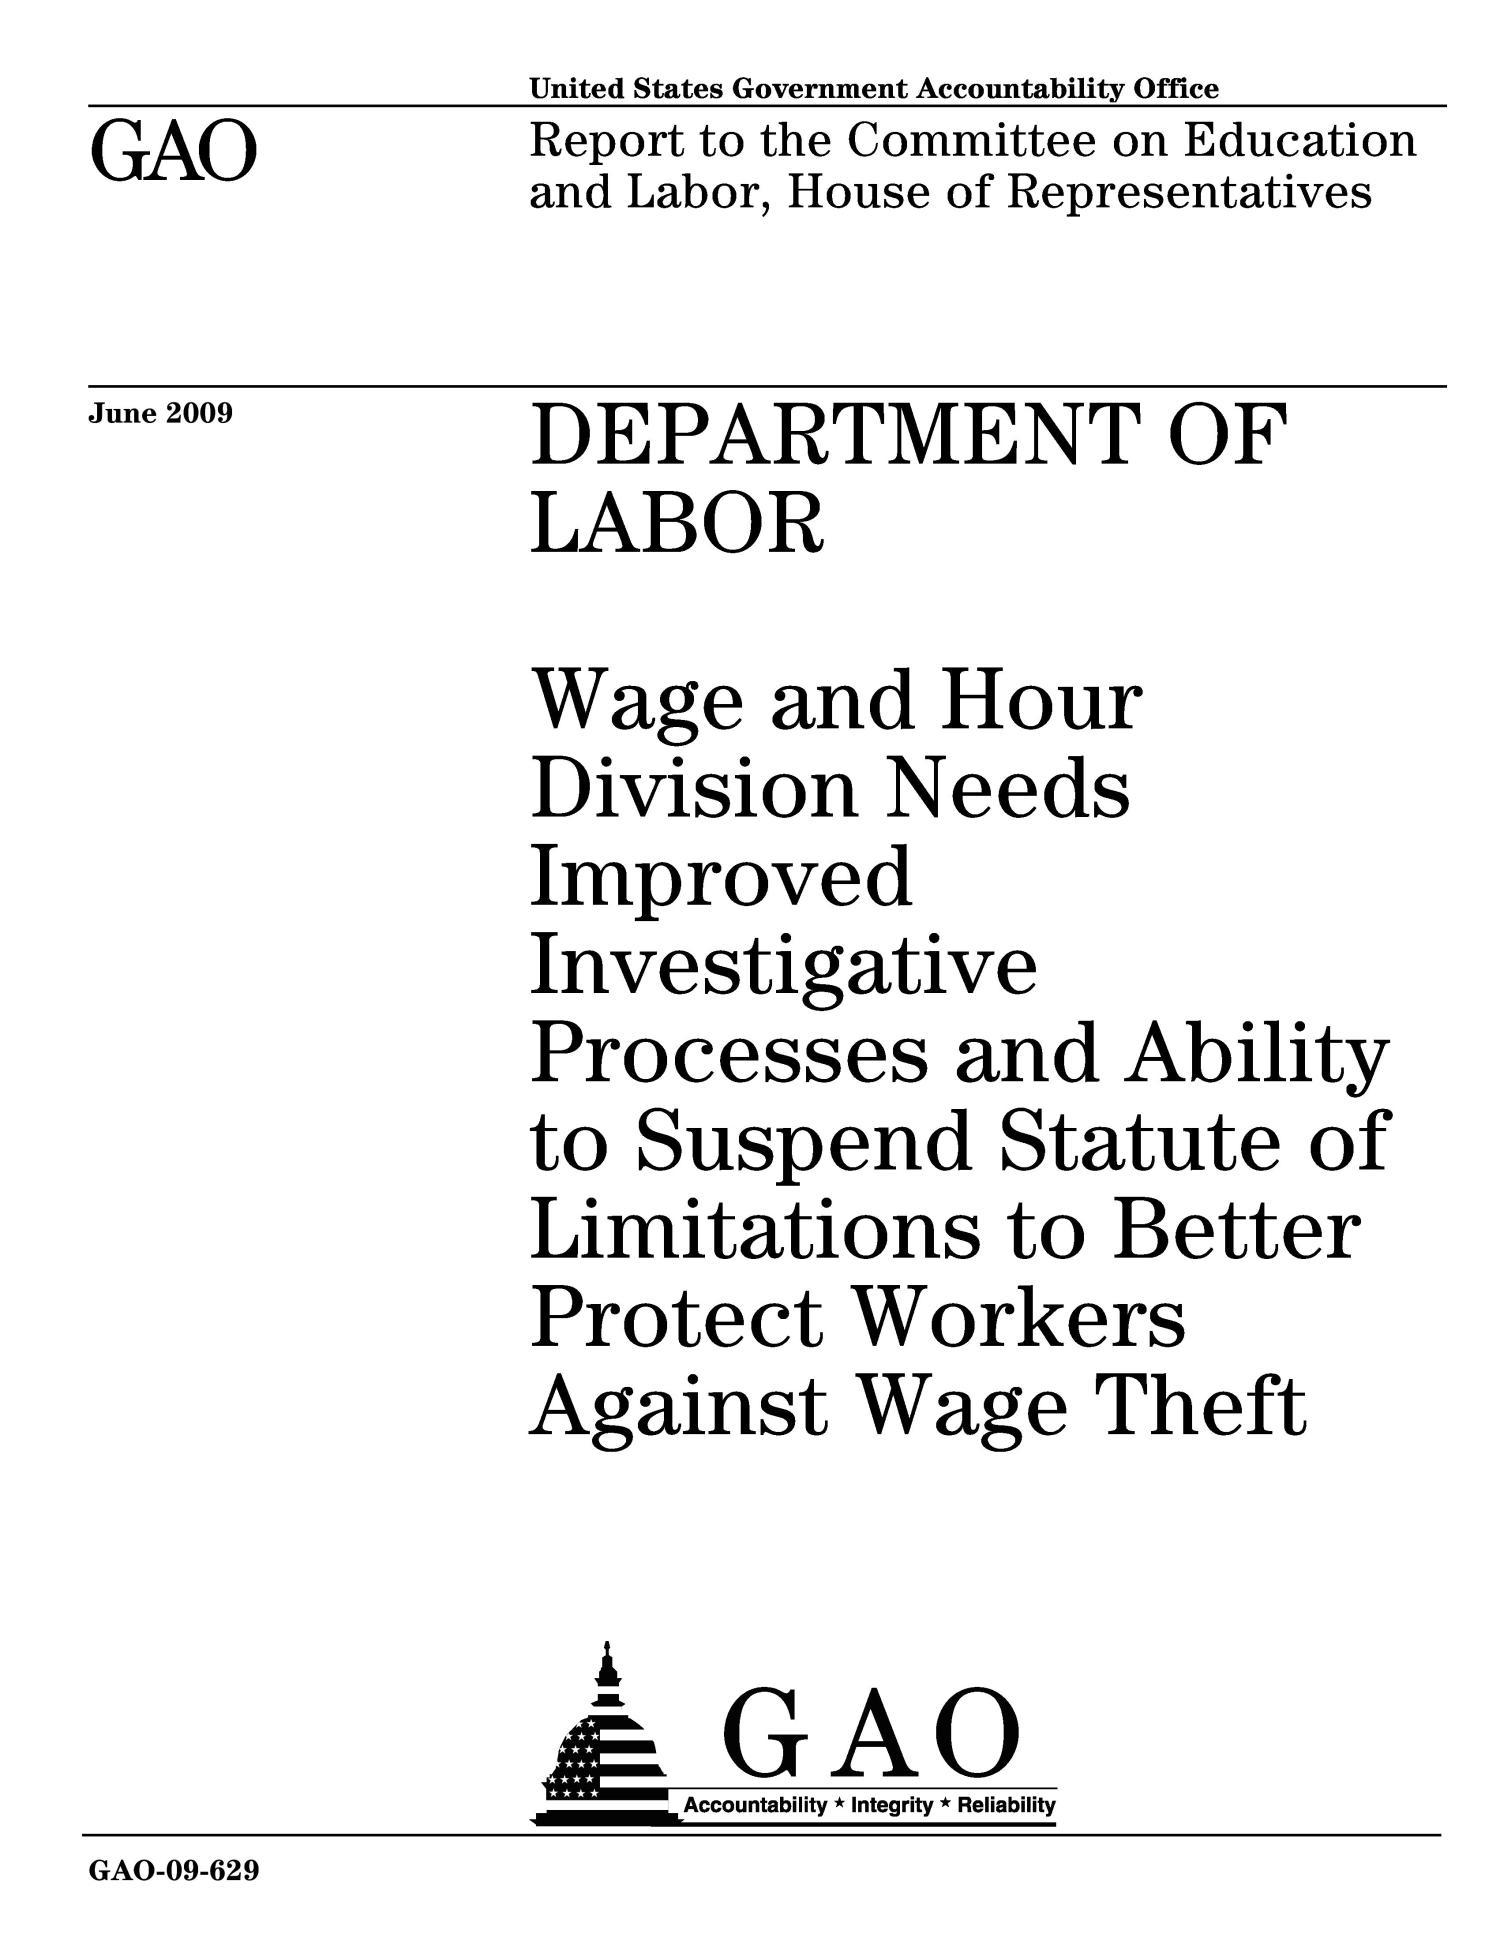 Department of Labor: Wage and Hour Division Needs Improved Investigative Processes and Ability to Suspend Statute of Limitations to Better Protect Workers Against Wage Theft                                                                                                      [Sequence #]: 1 of 57